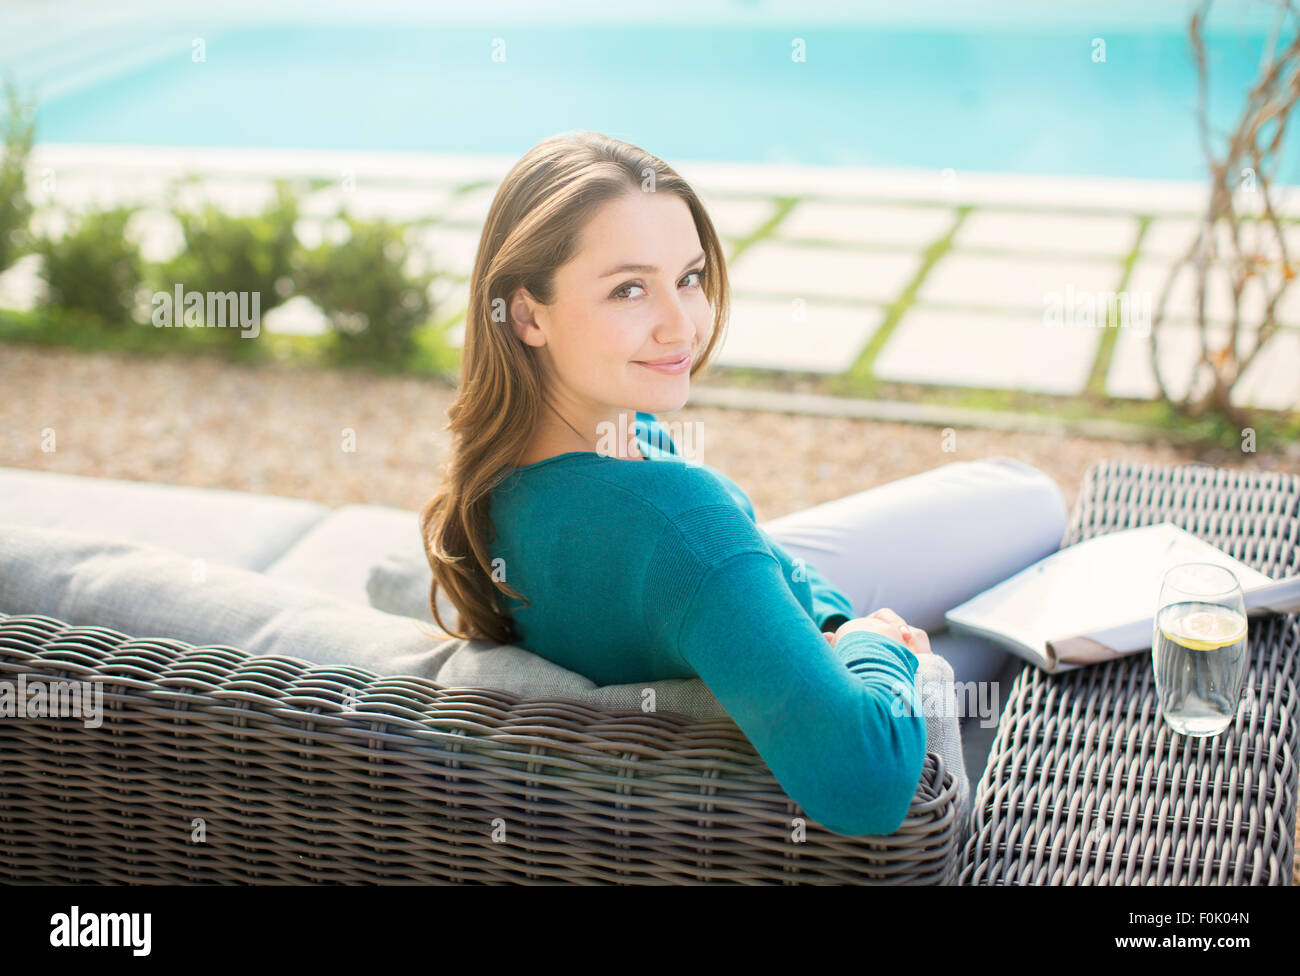 Portrait smiling woman reading magazine at luxury poolside - Stock Image